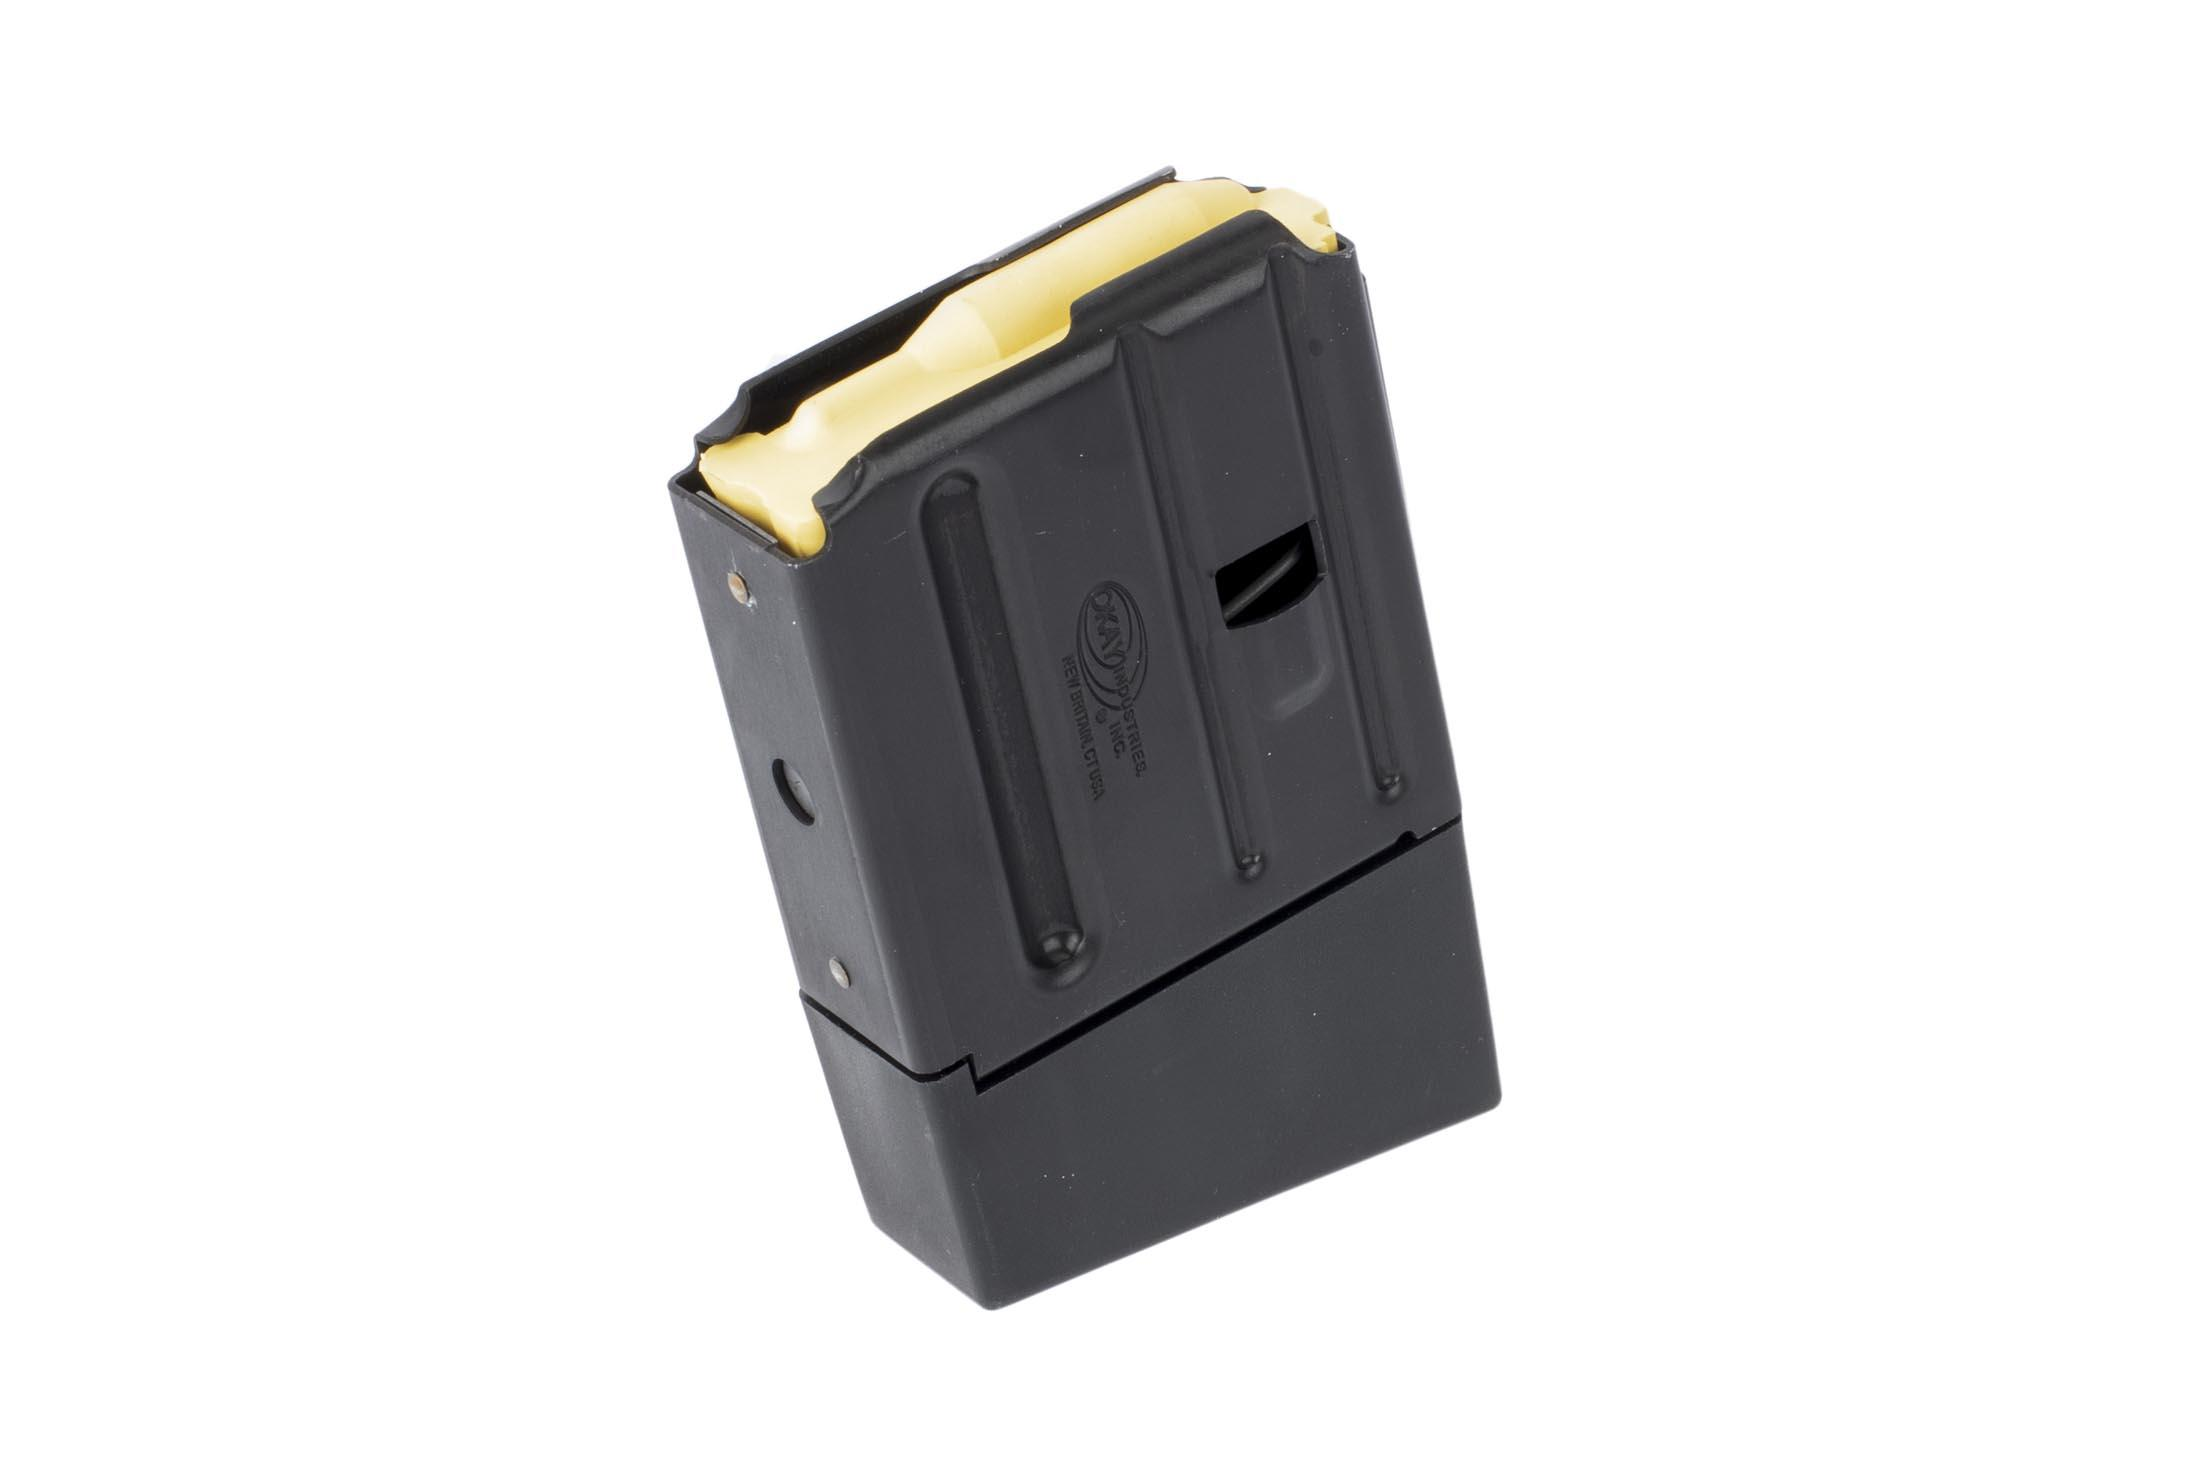 Okay Industries SureFeed AR-15 magazine holds 10 rounds of 5.56 NATO or 300 Blackout with an extended base plate and slick black finish